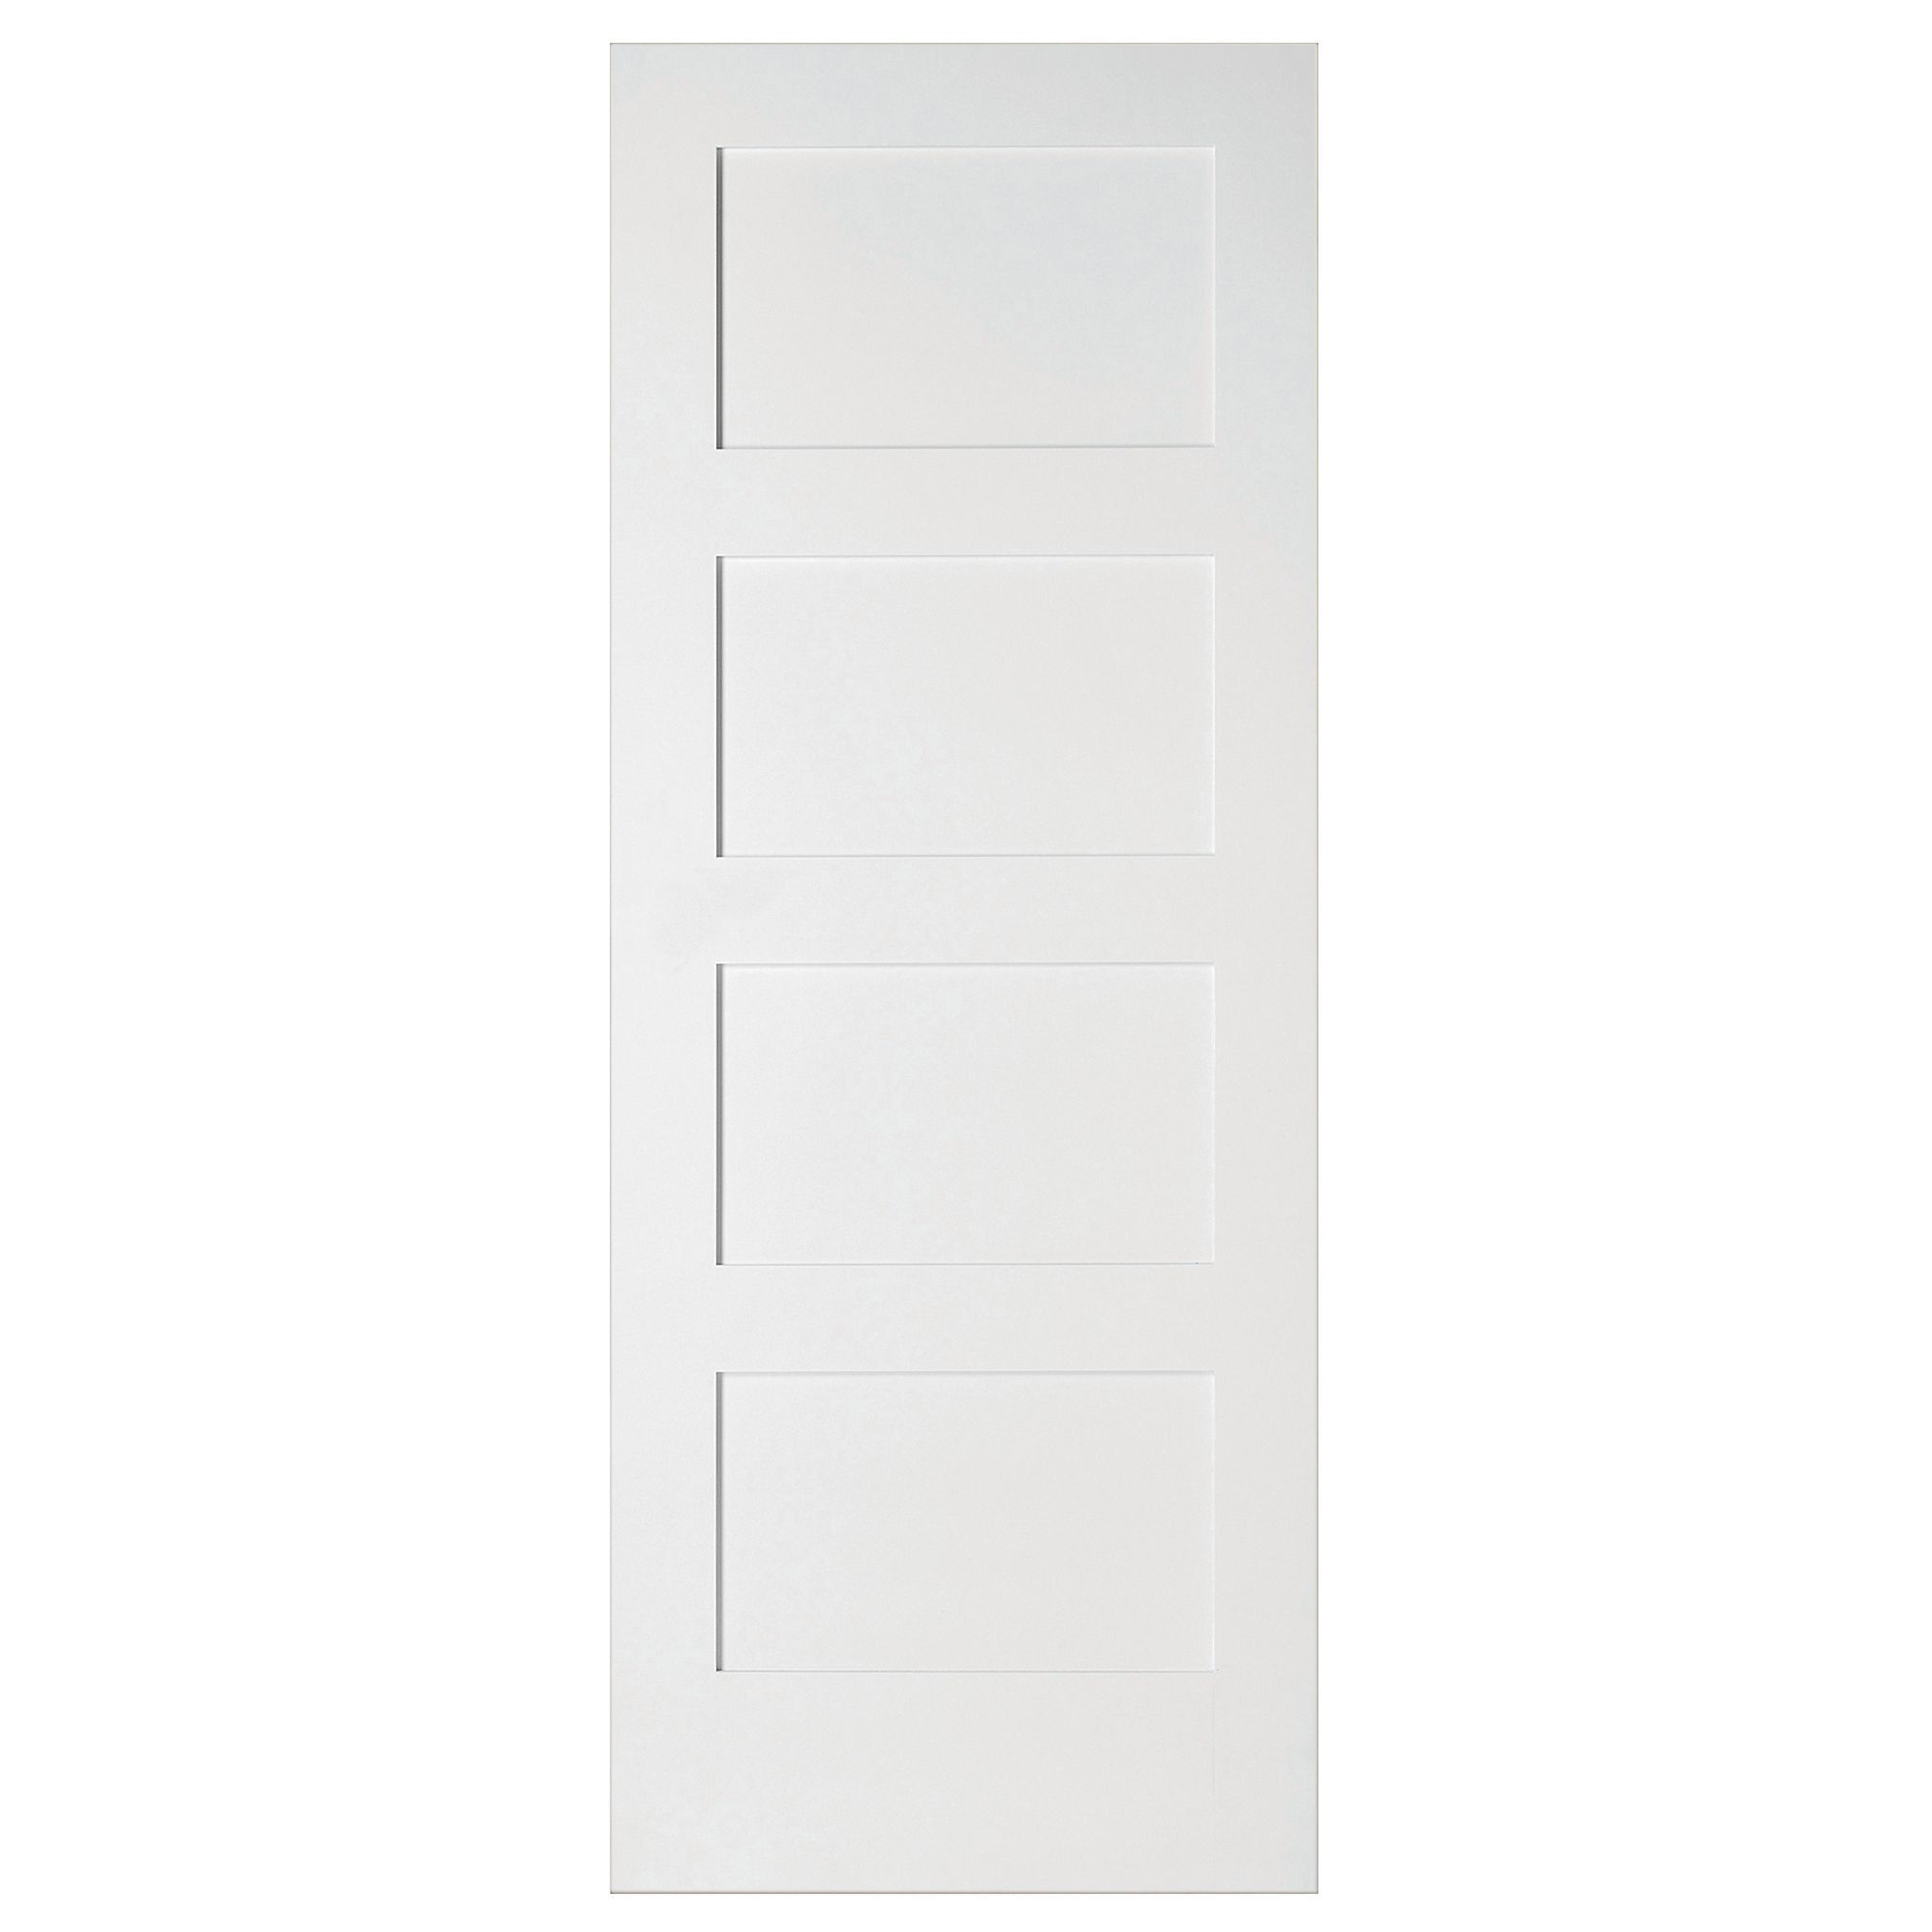 Plain White Door 4 panel shaker primed smooth internal unglazed door, (h)1981mm (w